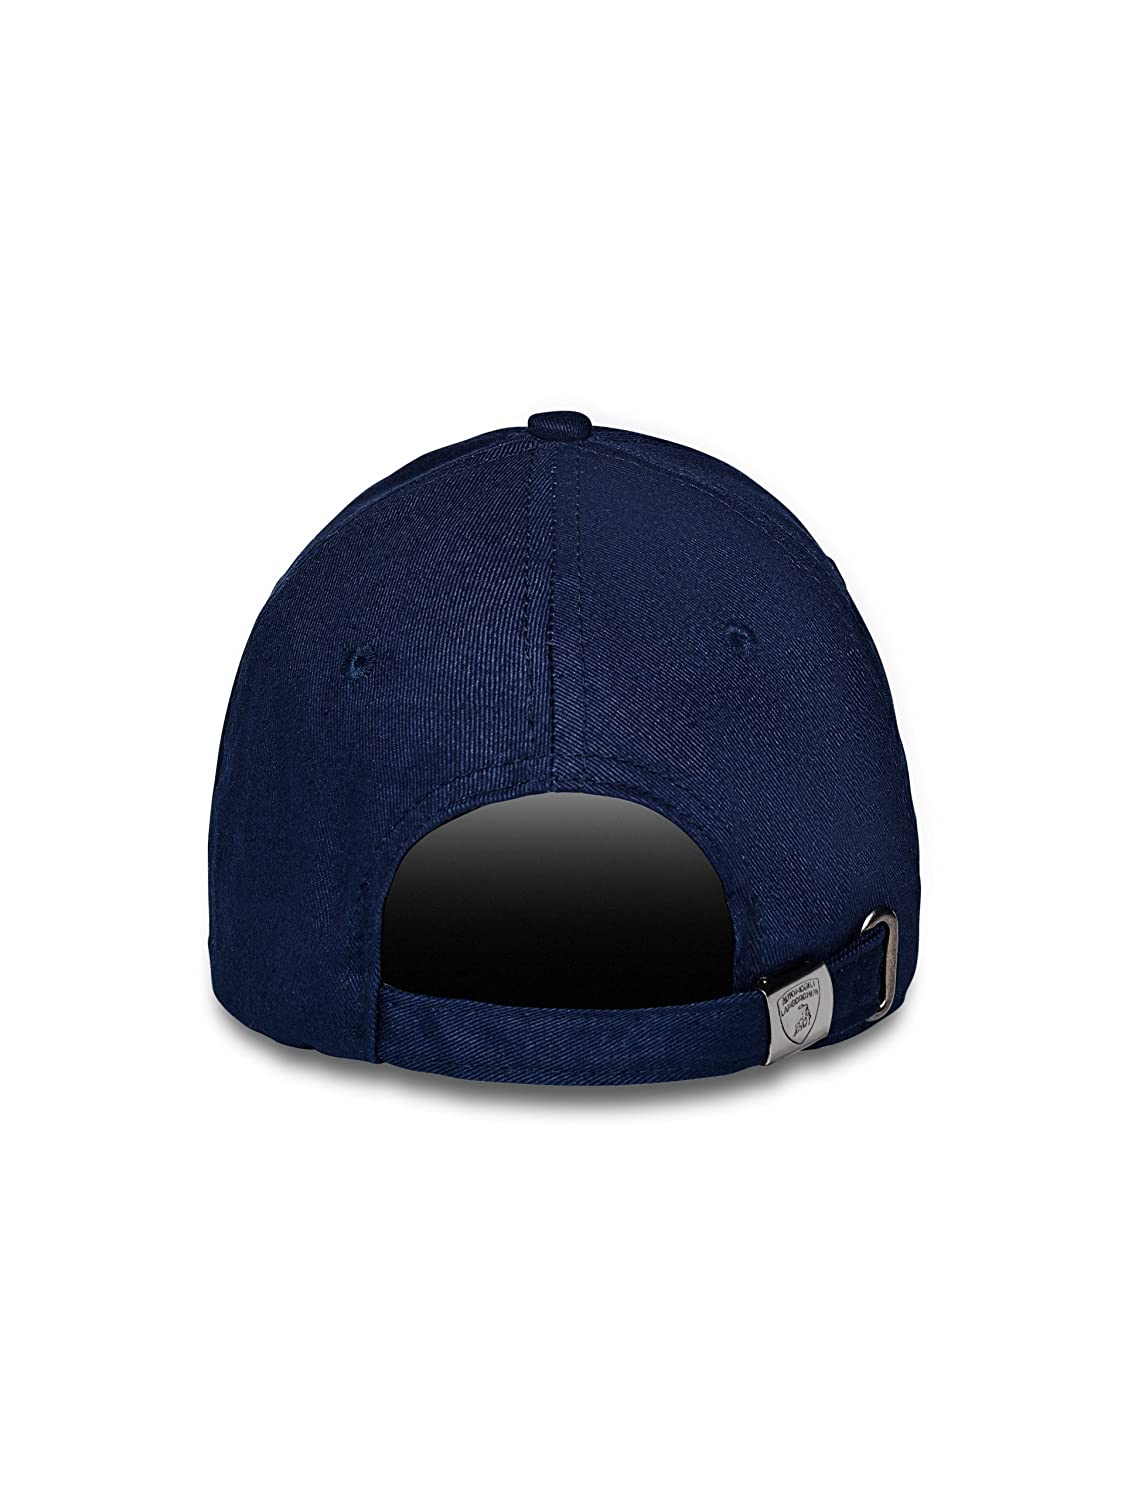 9ddf20a5c91af Automobili Lamborghini Accessories 1963 Cap Unique Size Blue at Amazon  Men s Clothing store